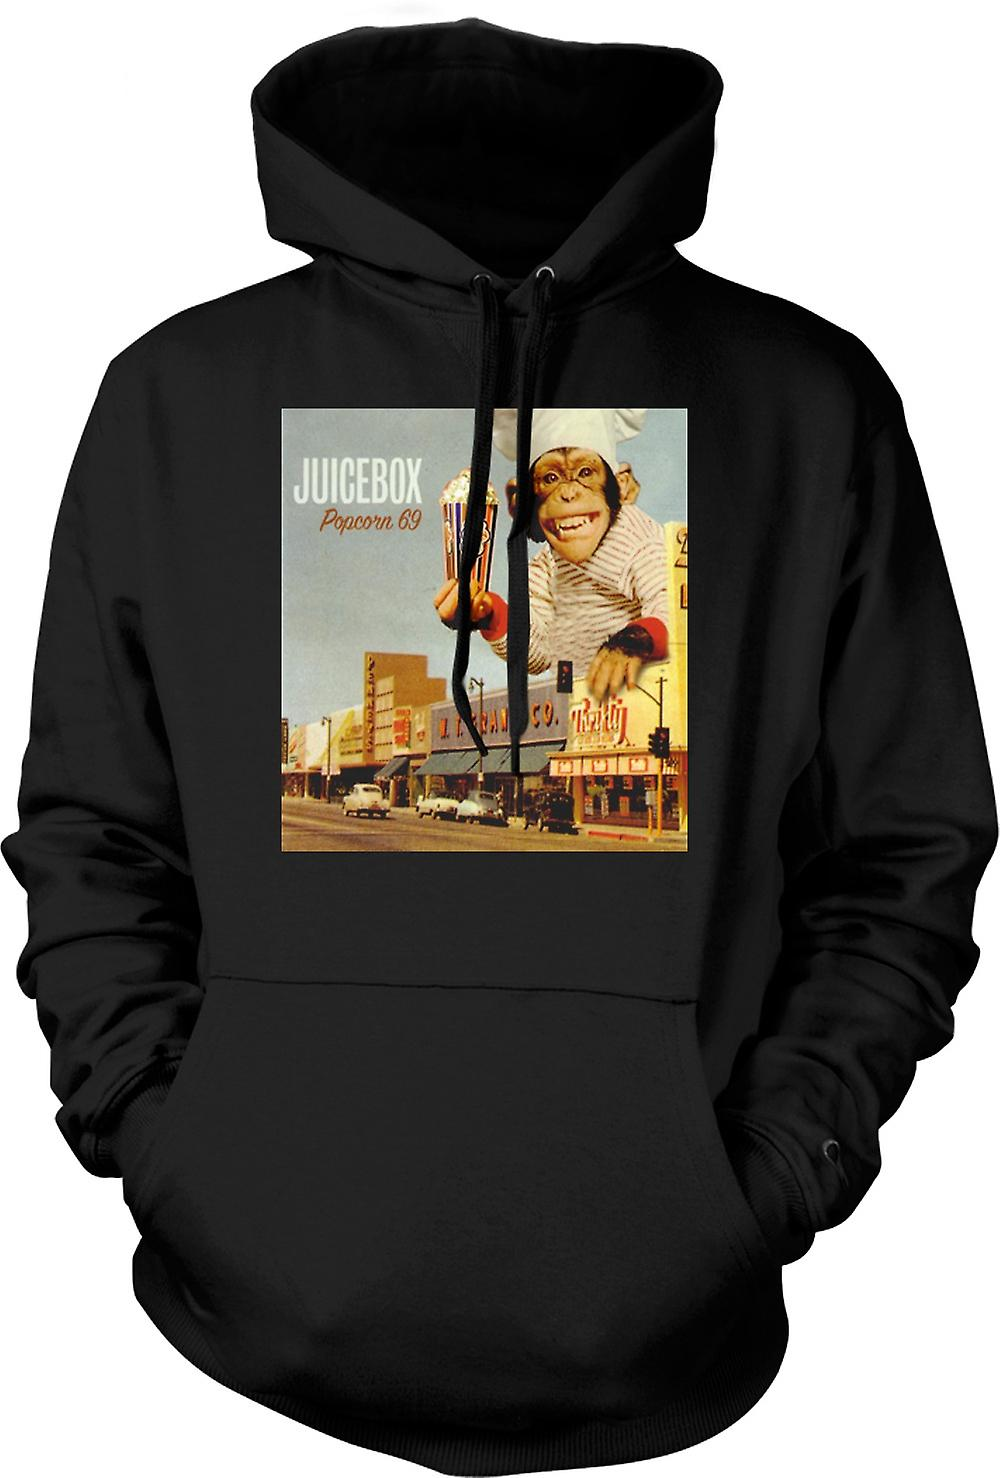 Mens Hoodie - Juicebox Popcorn 69 - Soul Band